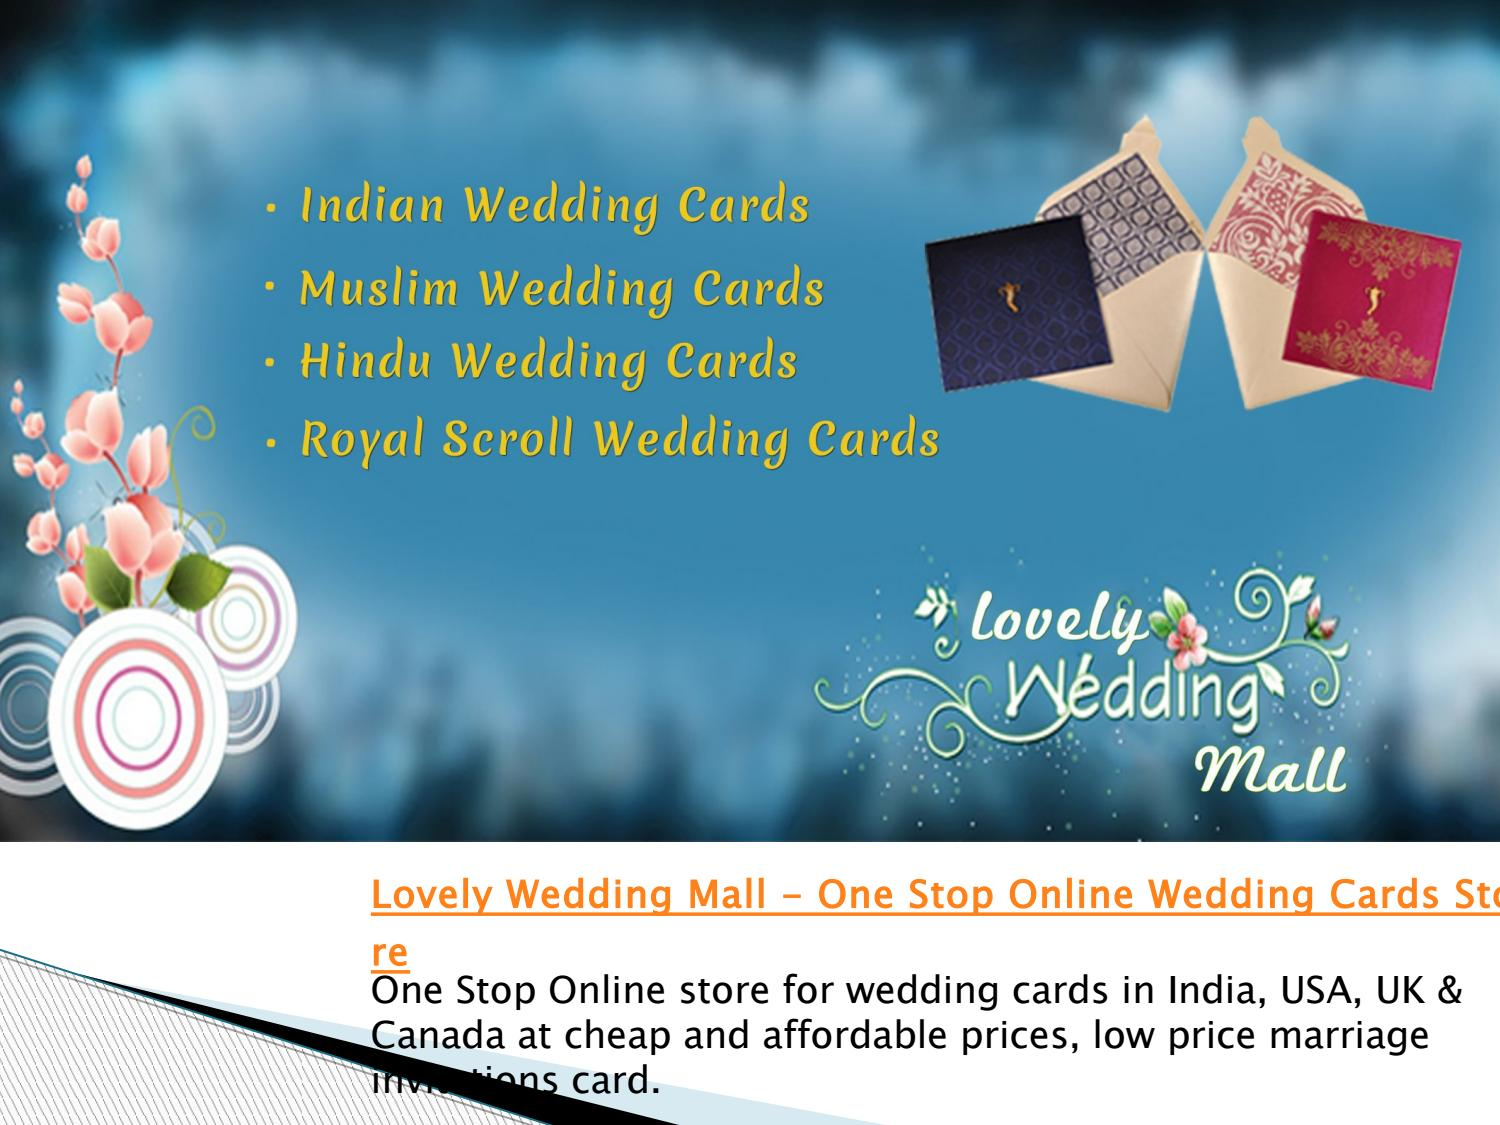 Lovely Wedding Mall One Stop Online Wedding Cards Store By Lovely